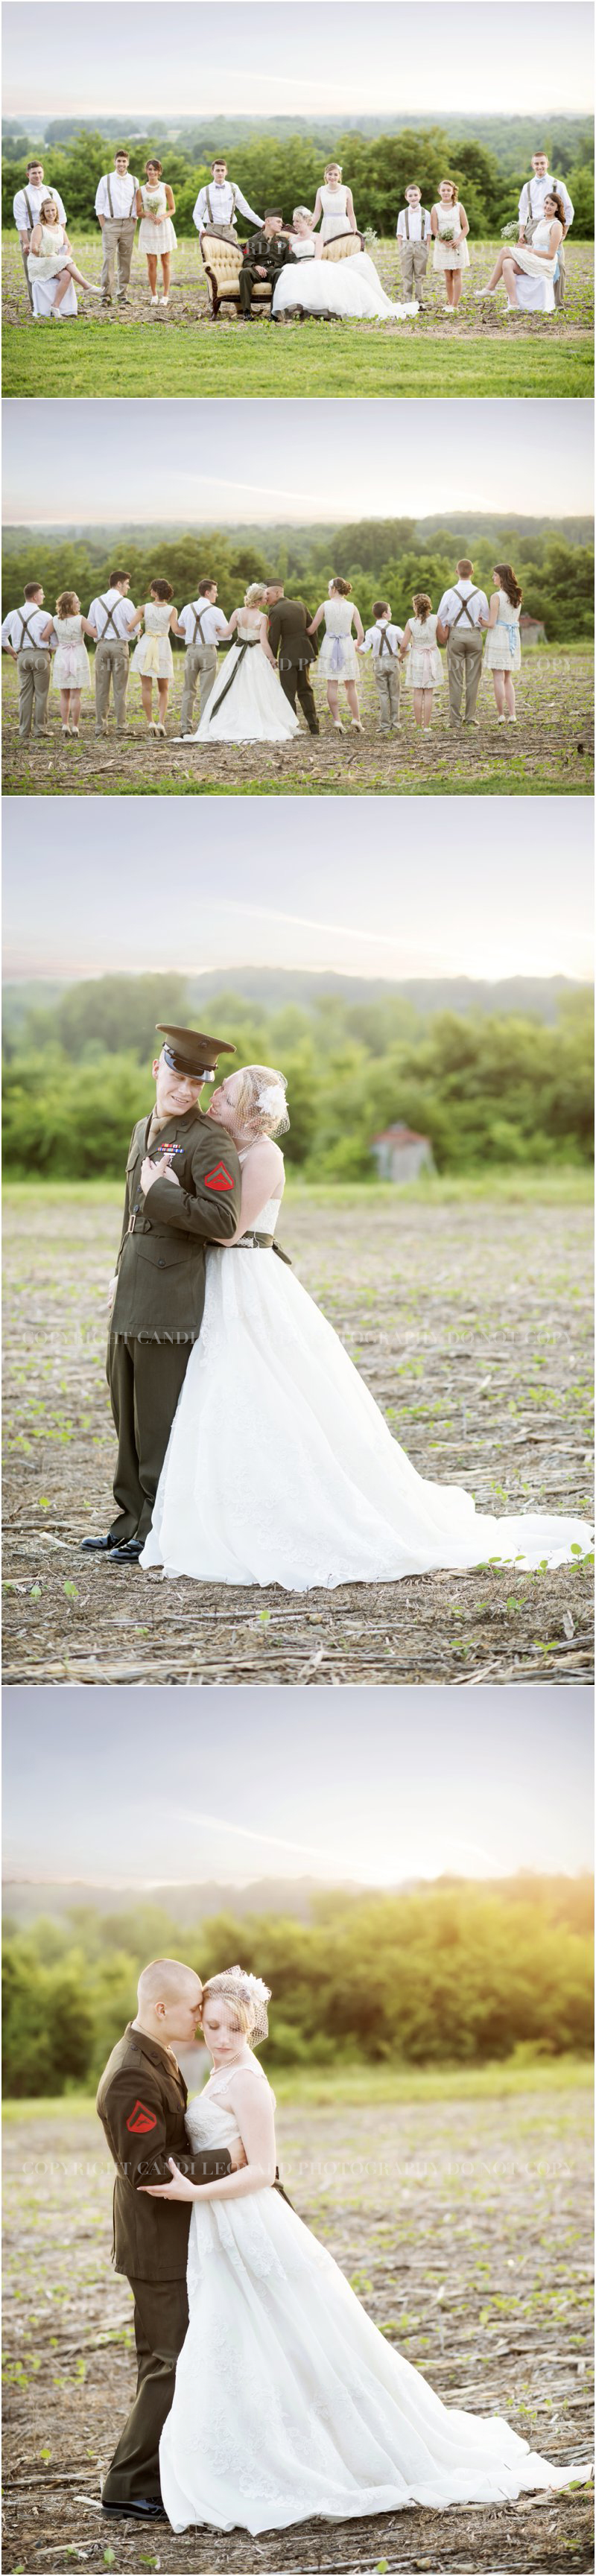 ASHEBORO_NC_wedding_photographer_0951